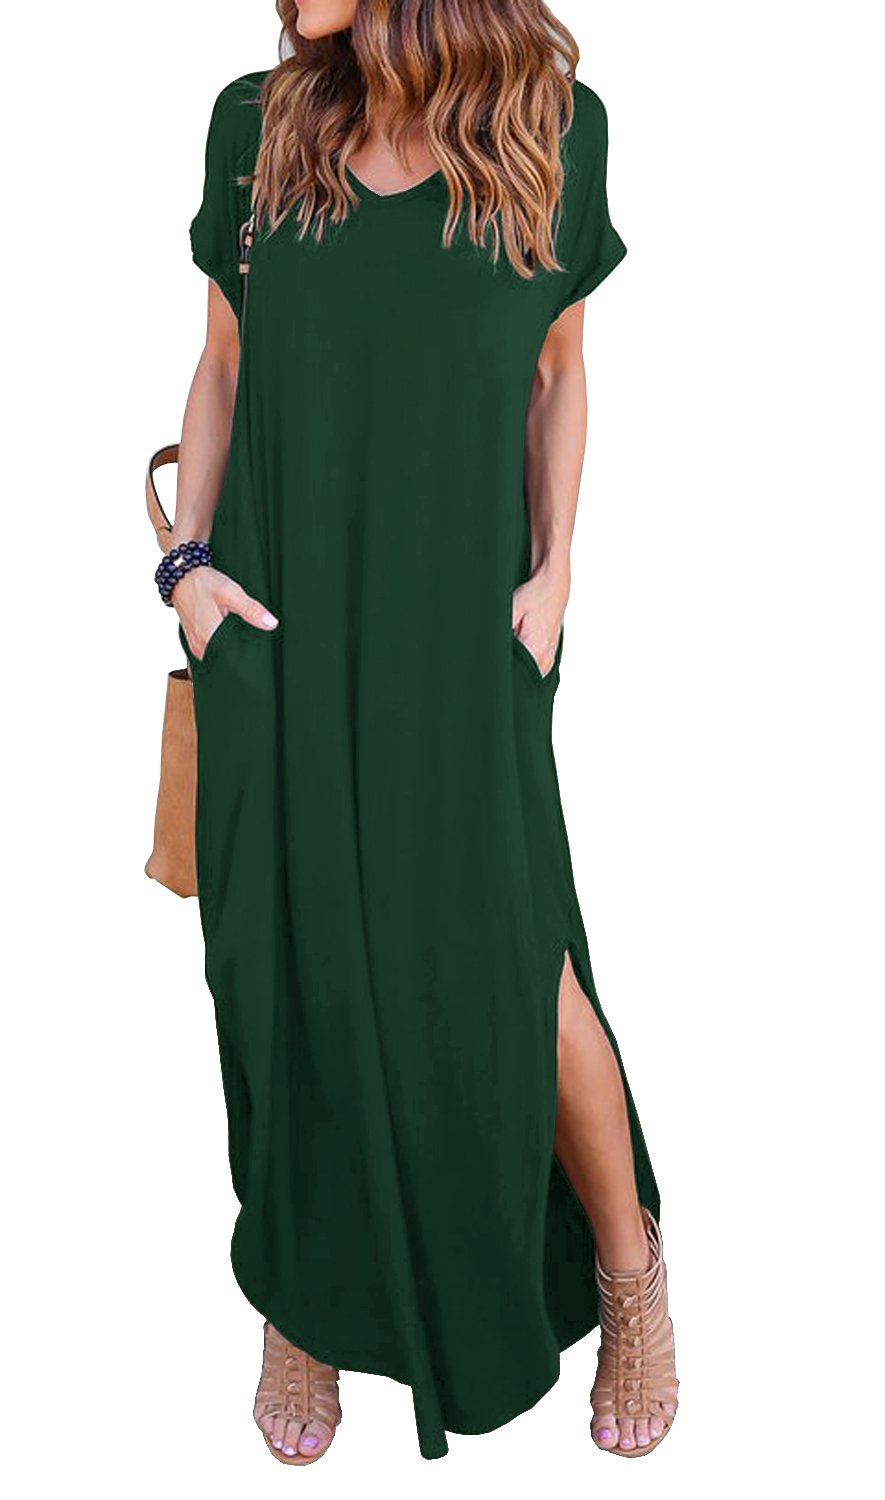 GRECERELLE Women's Casual Loose Pocket Long Dress Short Sleeve Split Maxi Dress Dark Green M